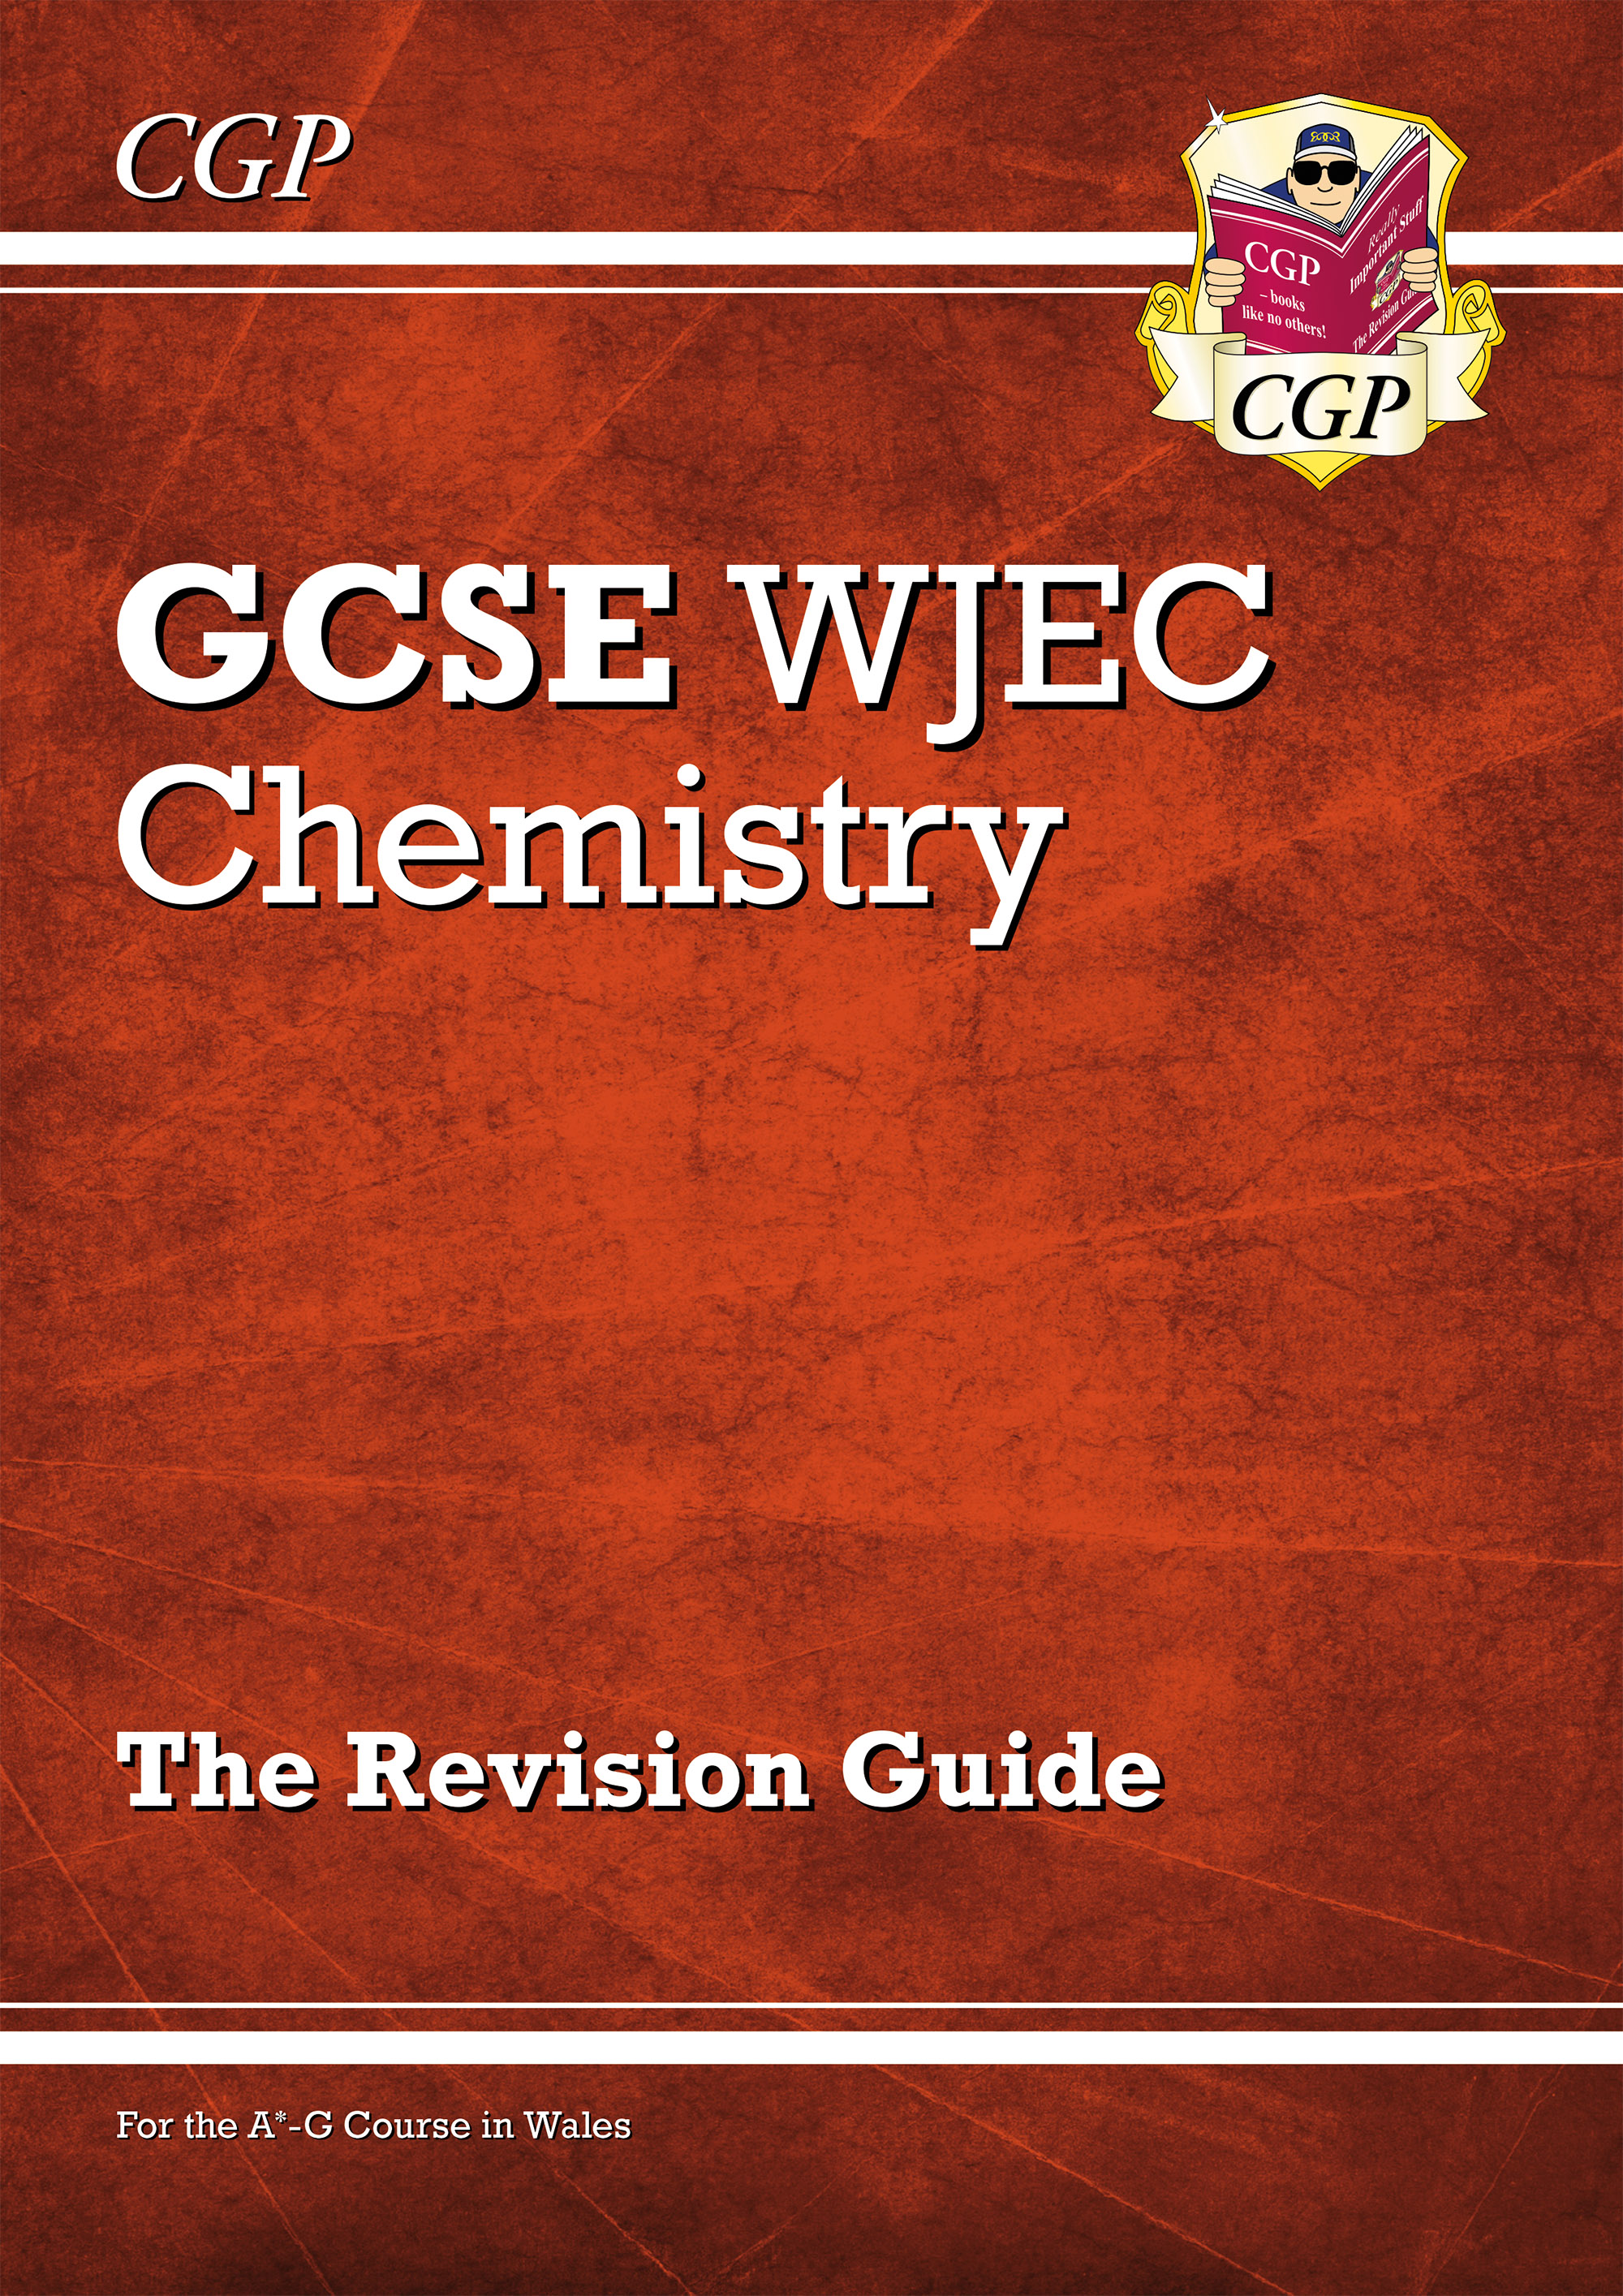 CWR41DK - New WJEC GCSE Chemistry Revision Guide